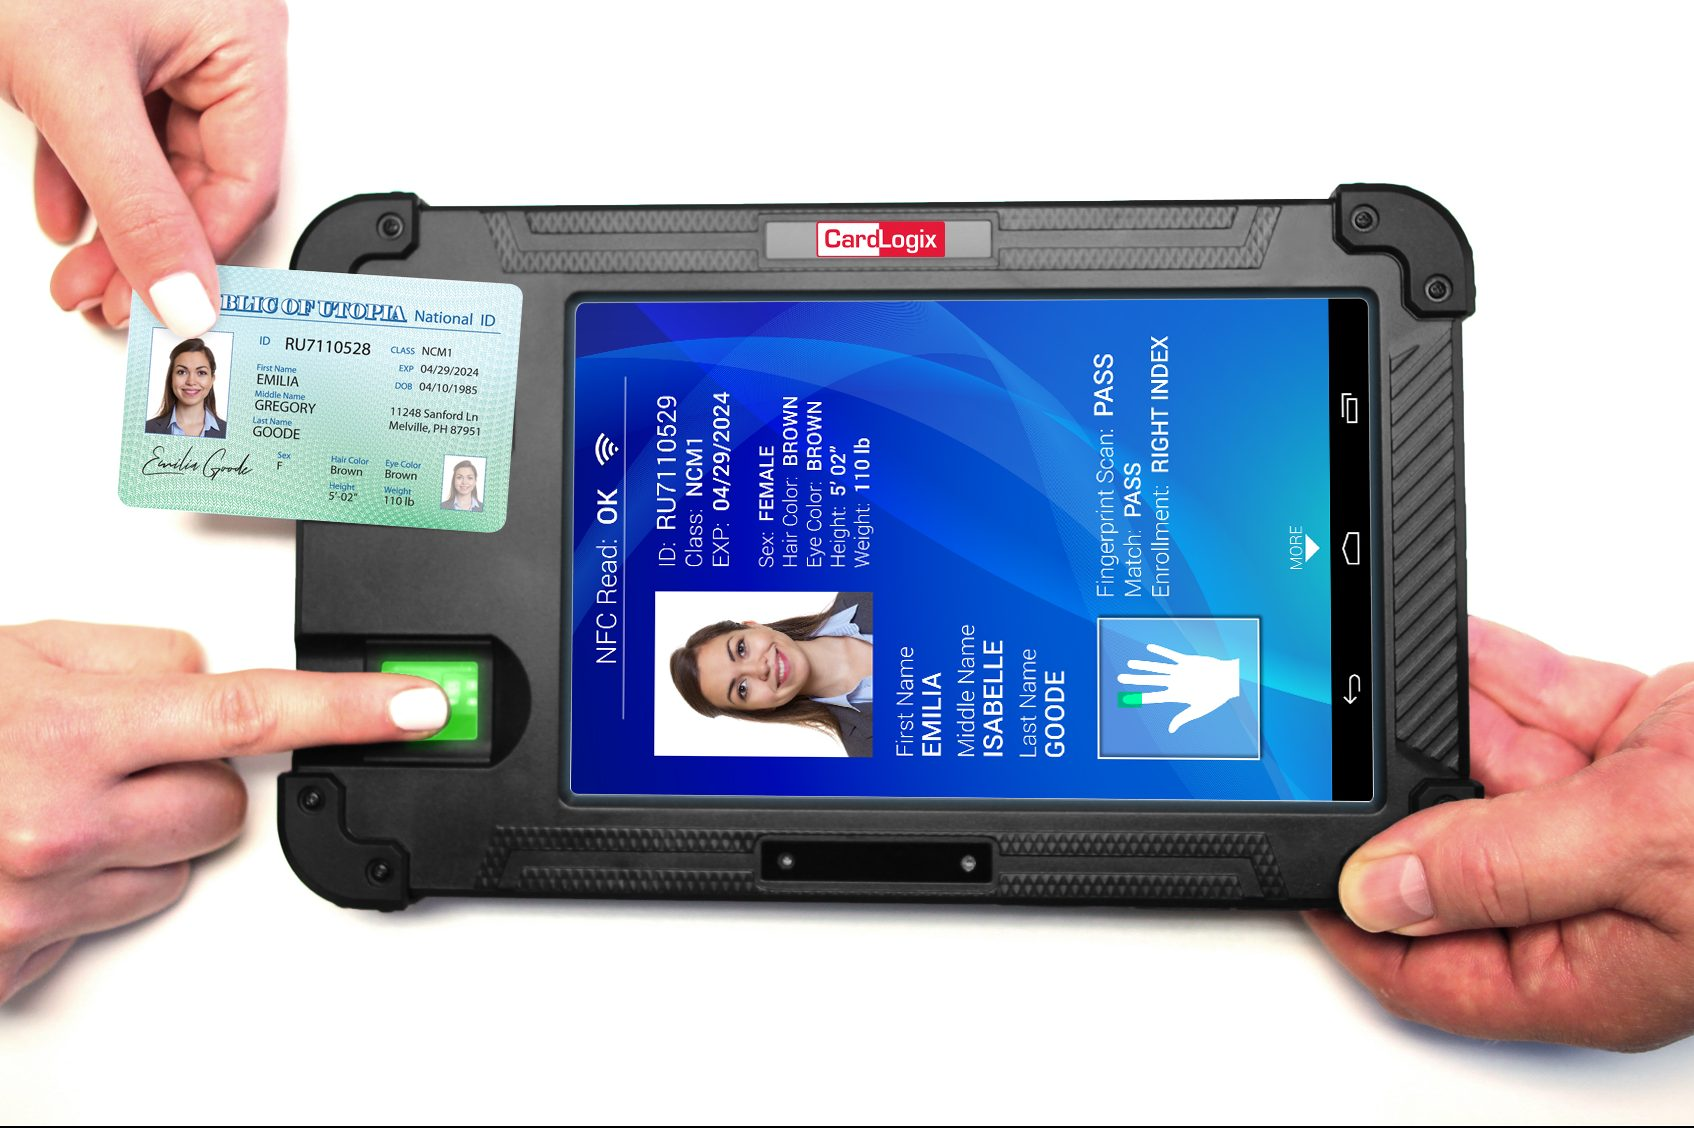 BIOSID handheld biometric and card ID solution by CardLogix